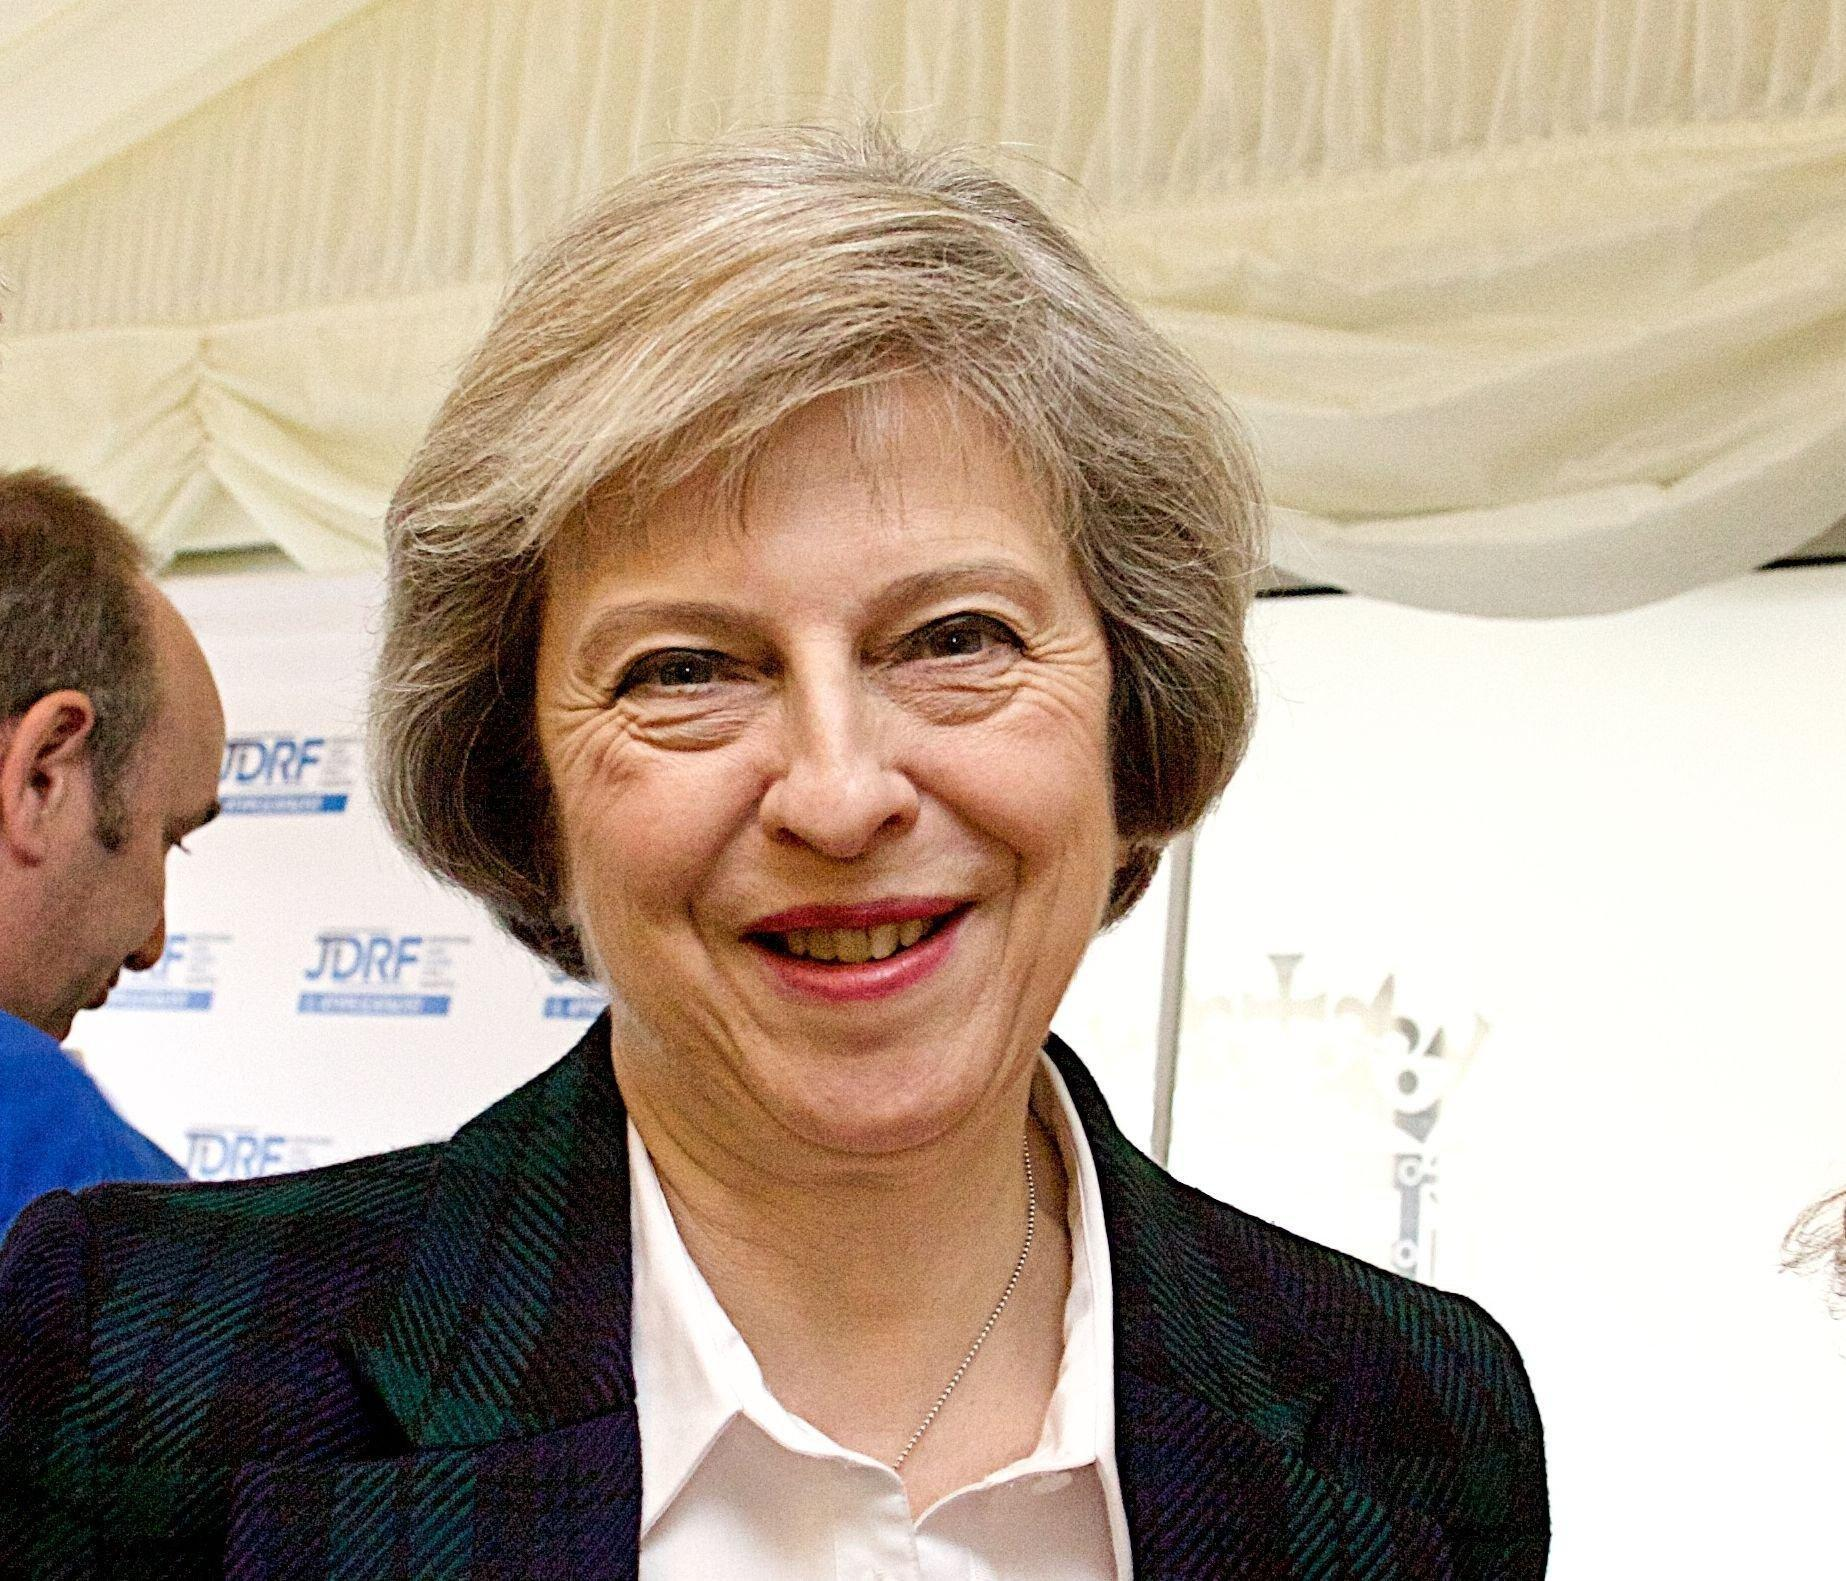 Theresa May Set To Become The First Prime Minister And World Leader With Type 1 Diabetes